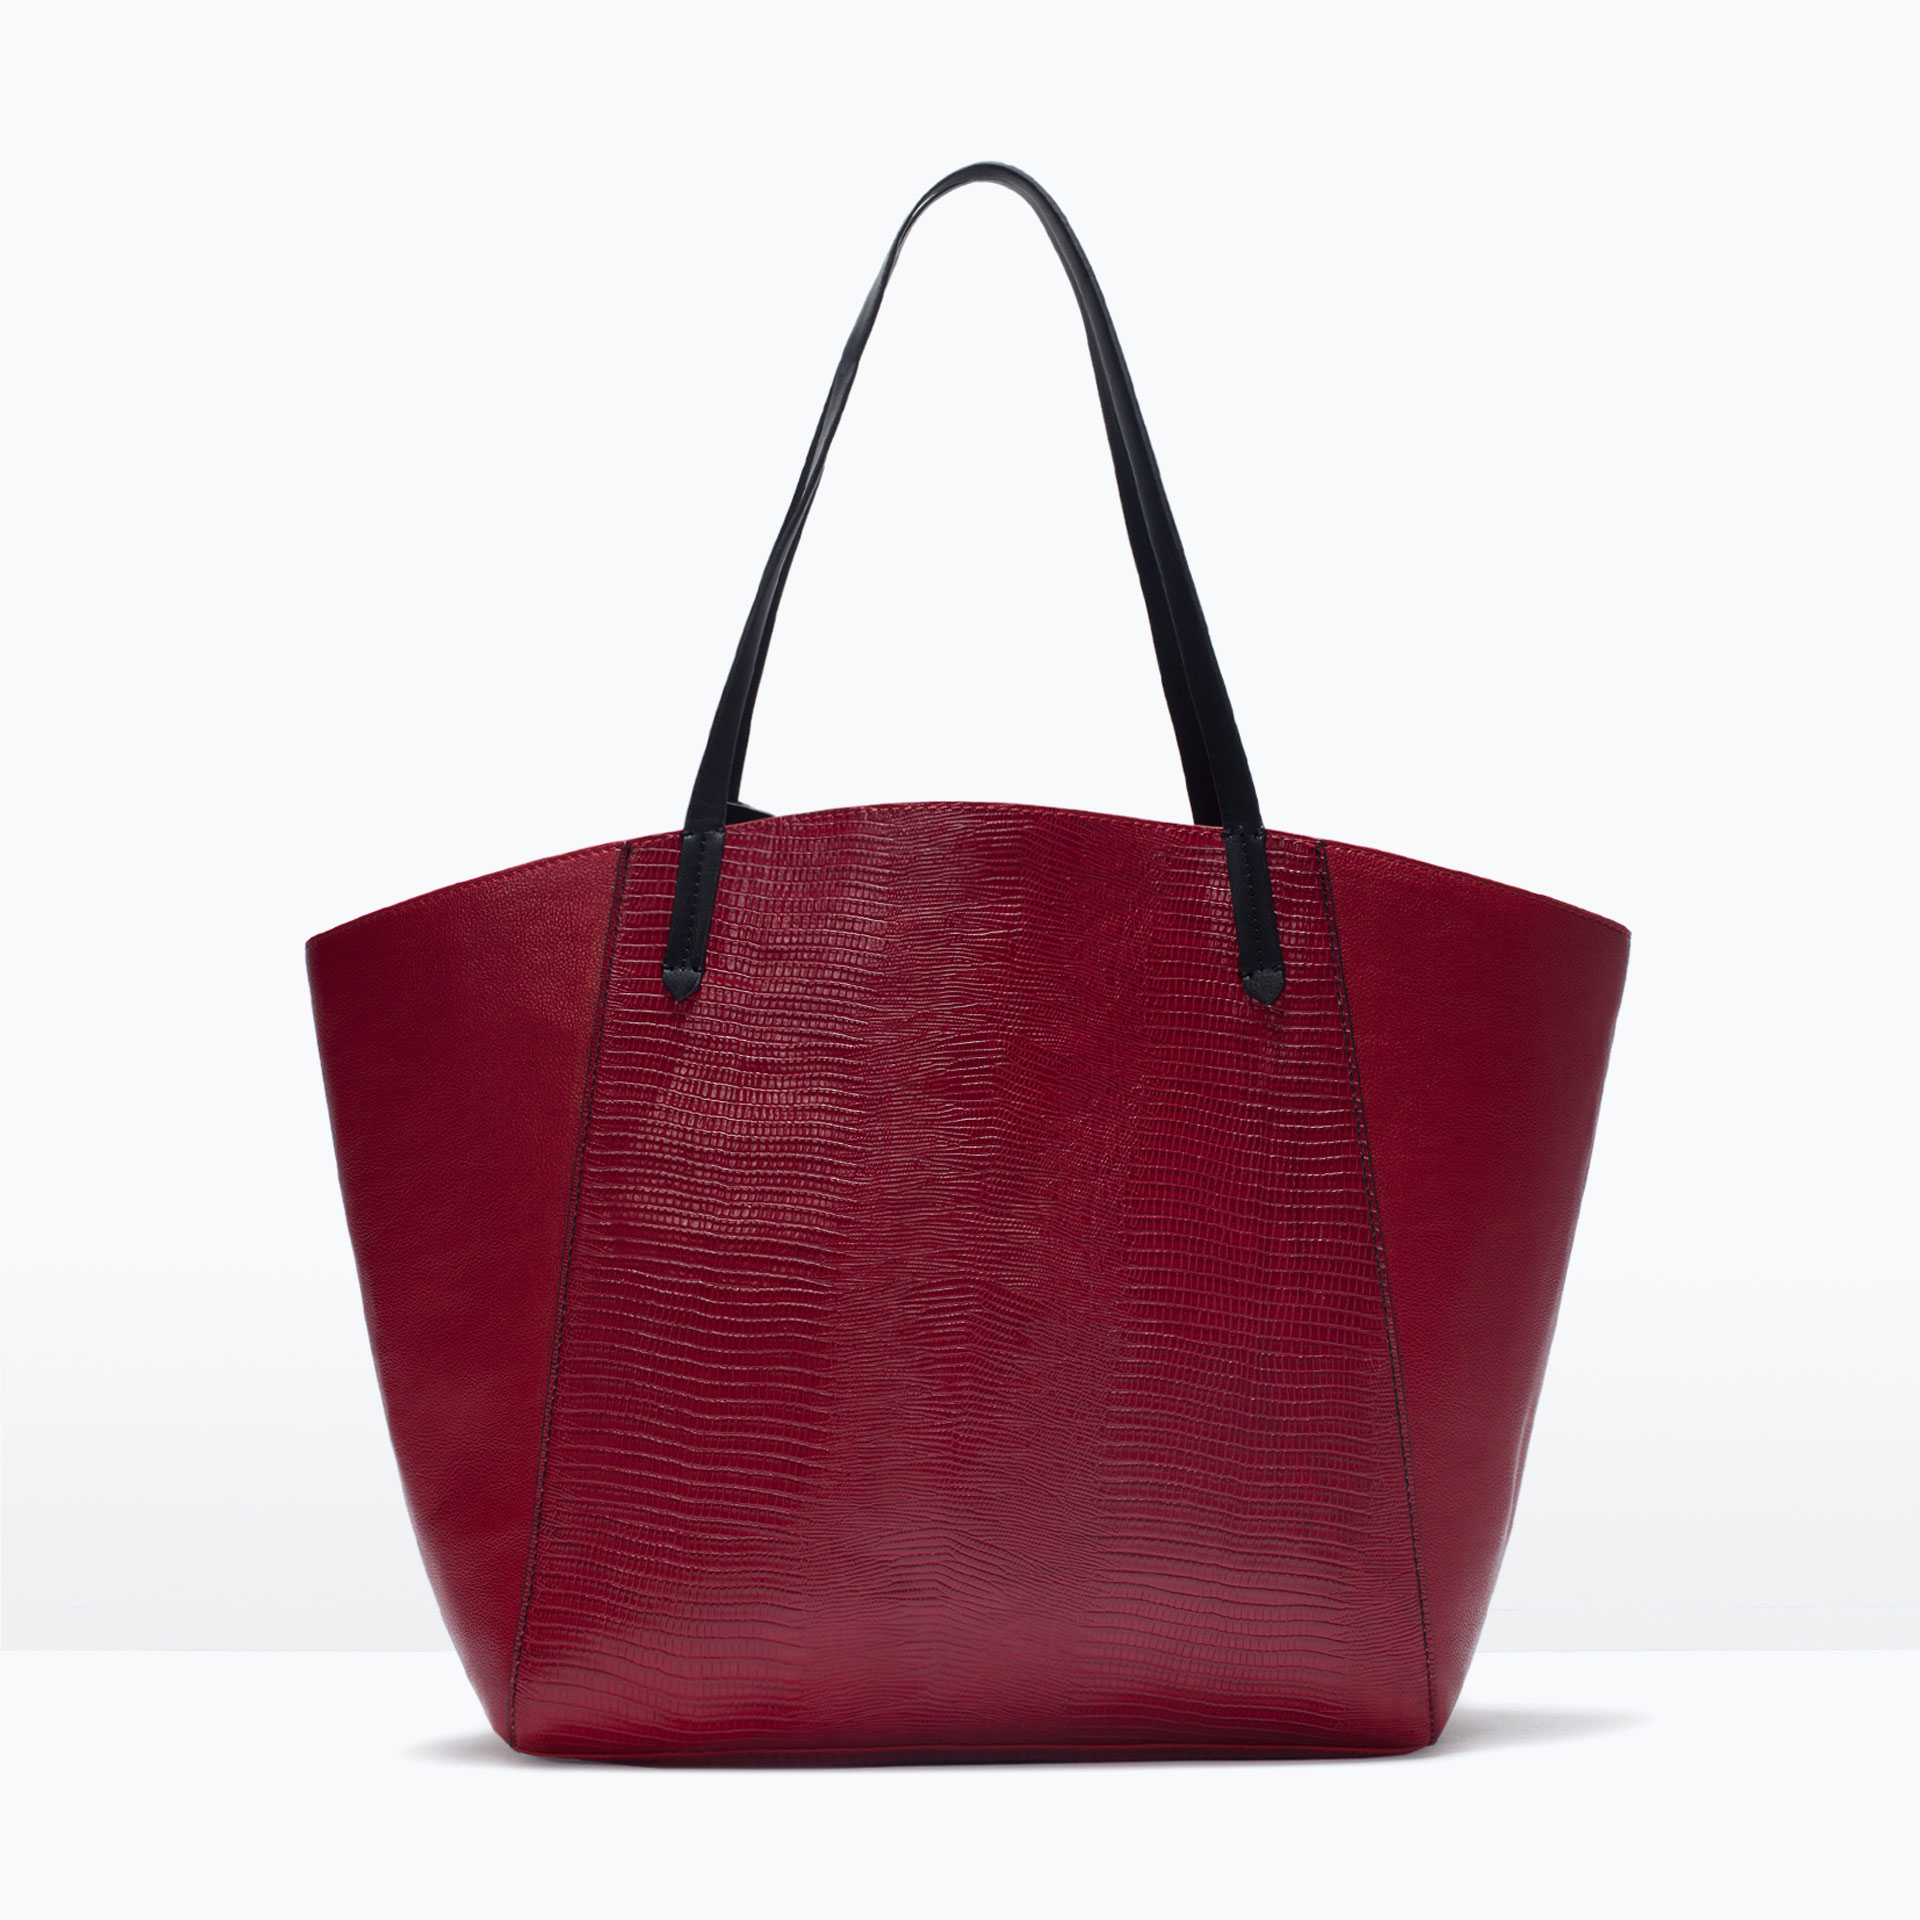 Zara Combined Shopper Bag in Red | Lyst